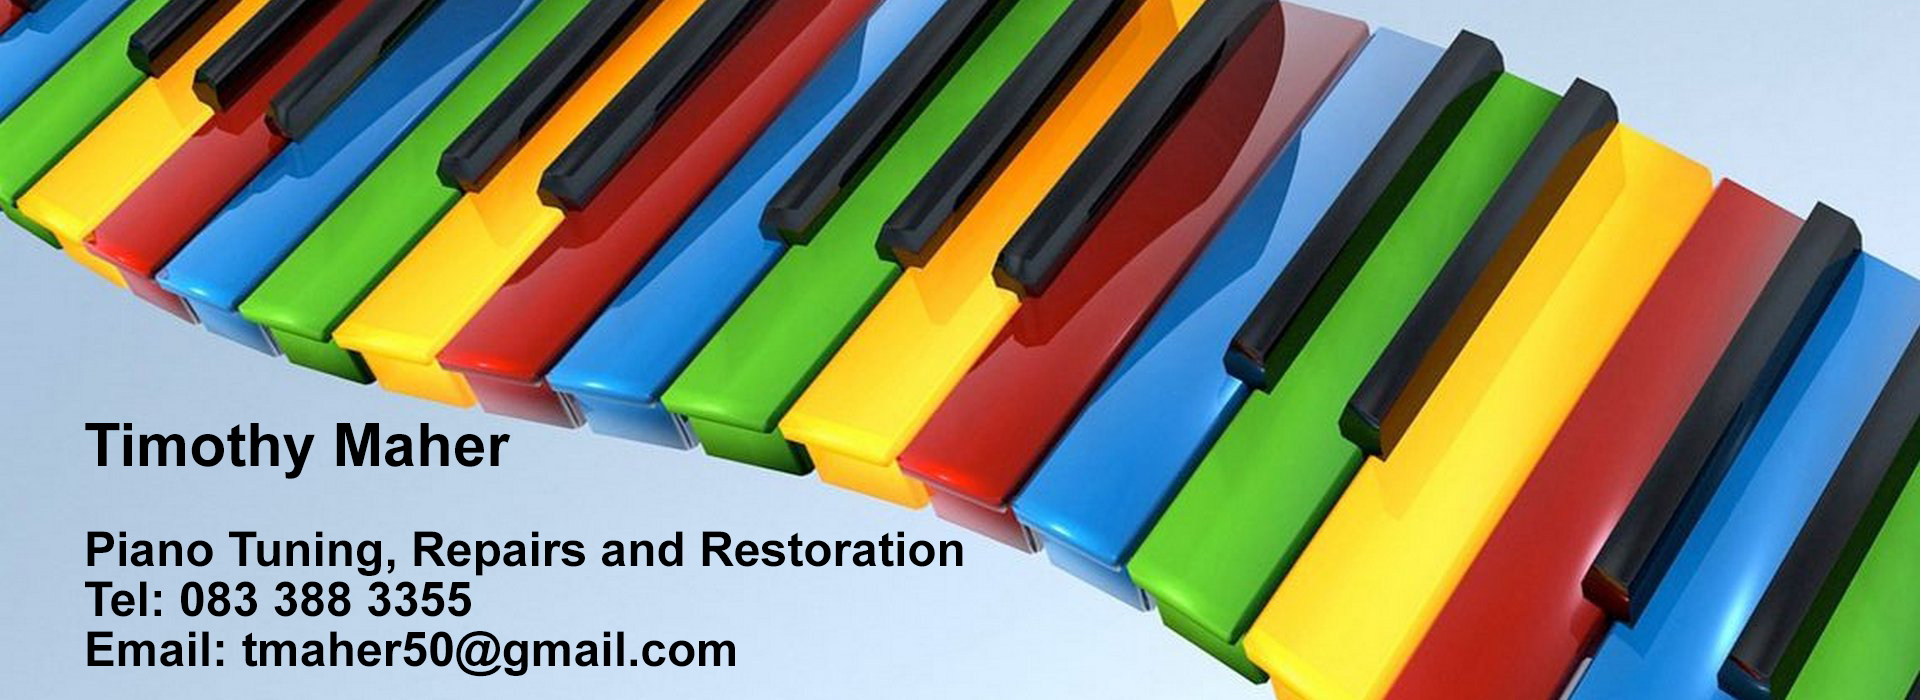 Timothy Maher Piano Services